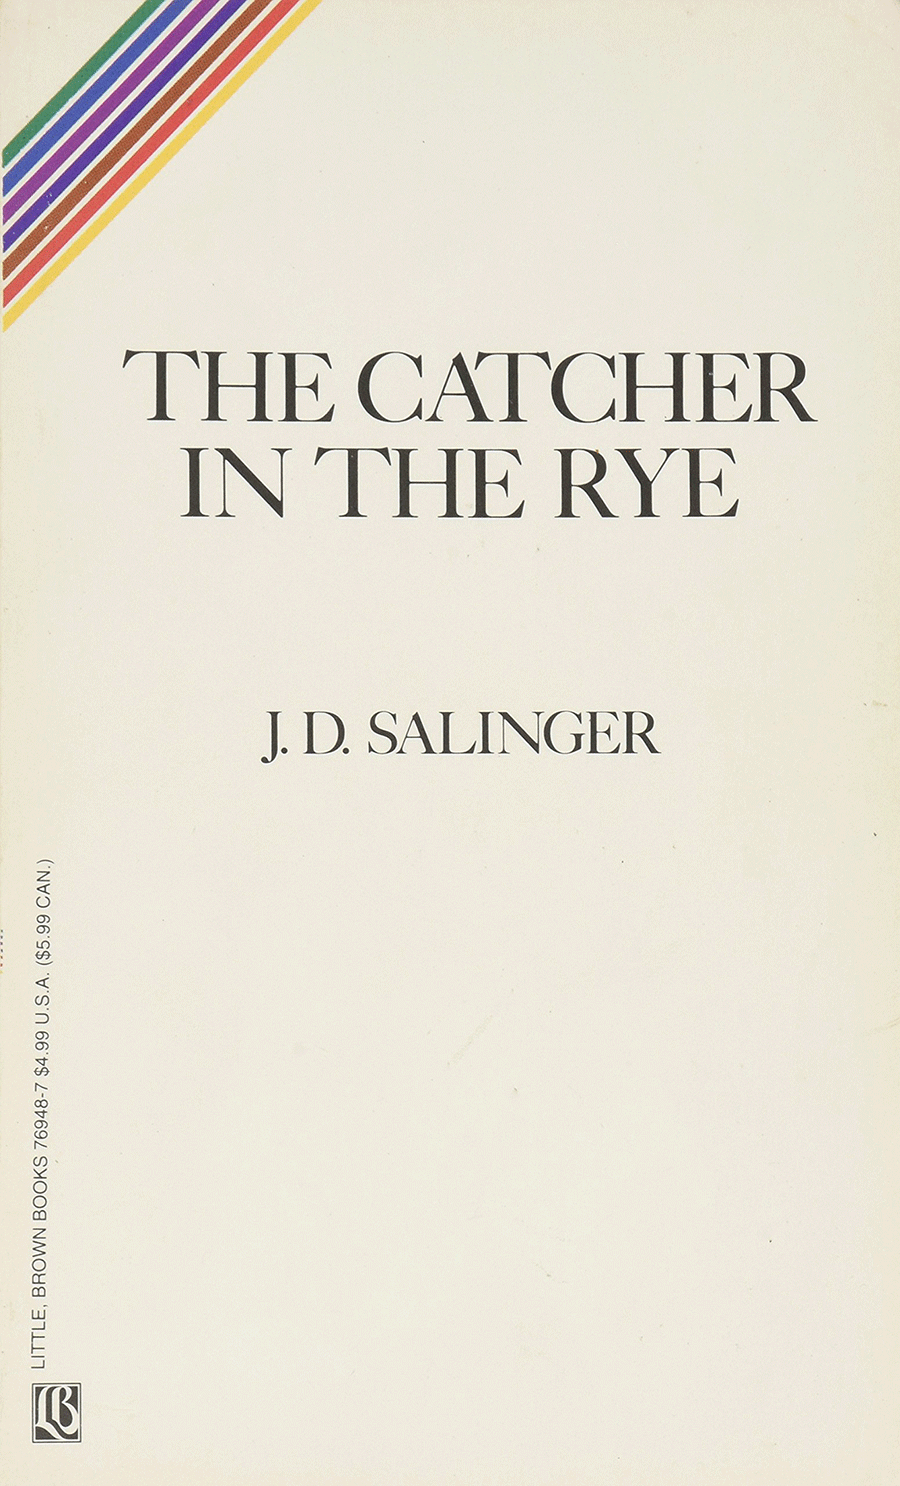 Catcher-Cover.png